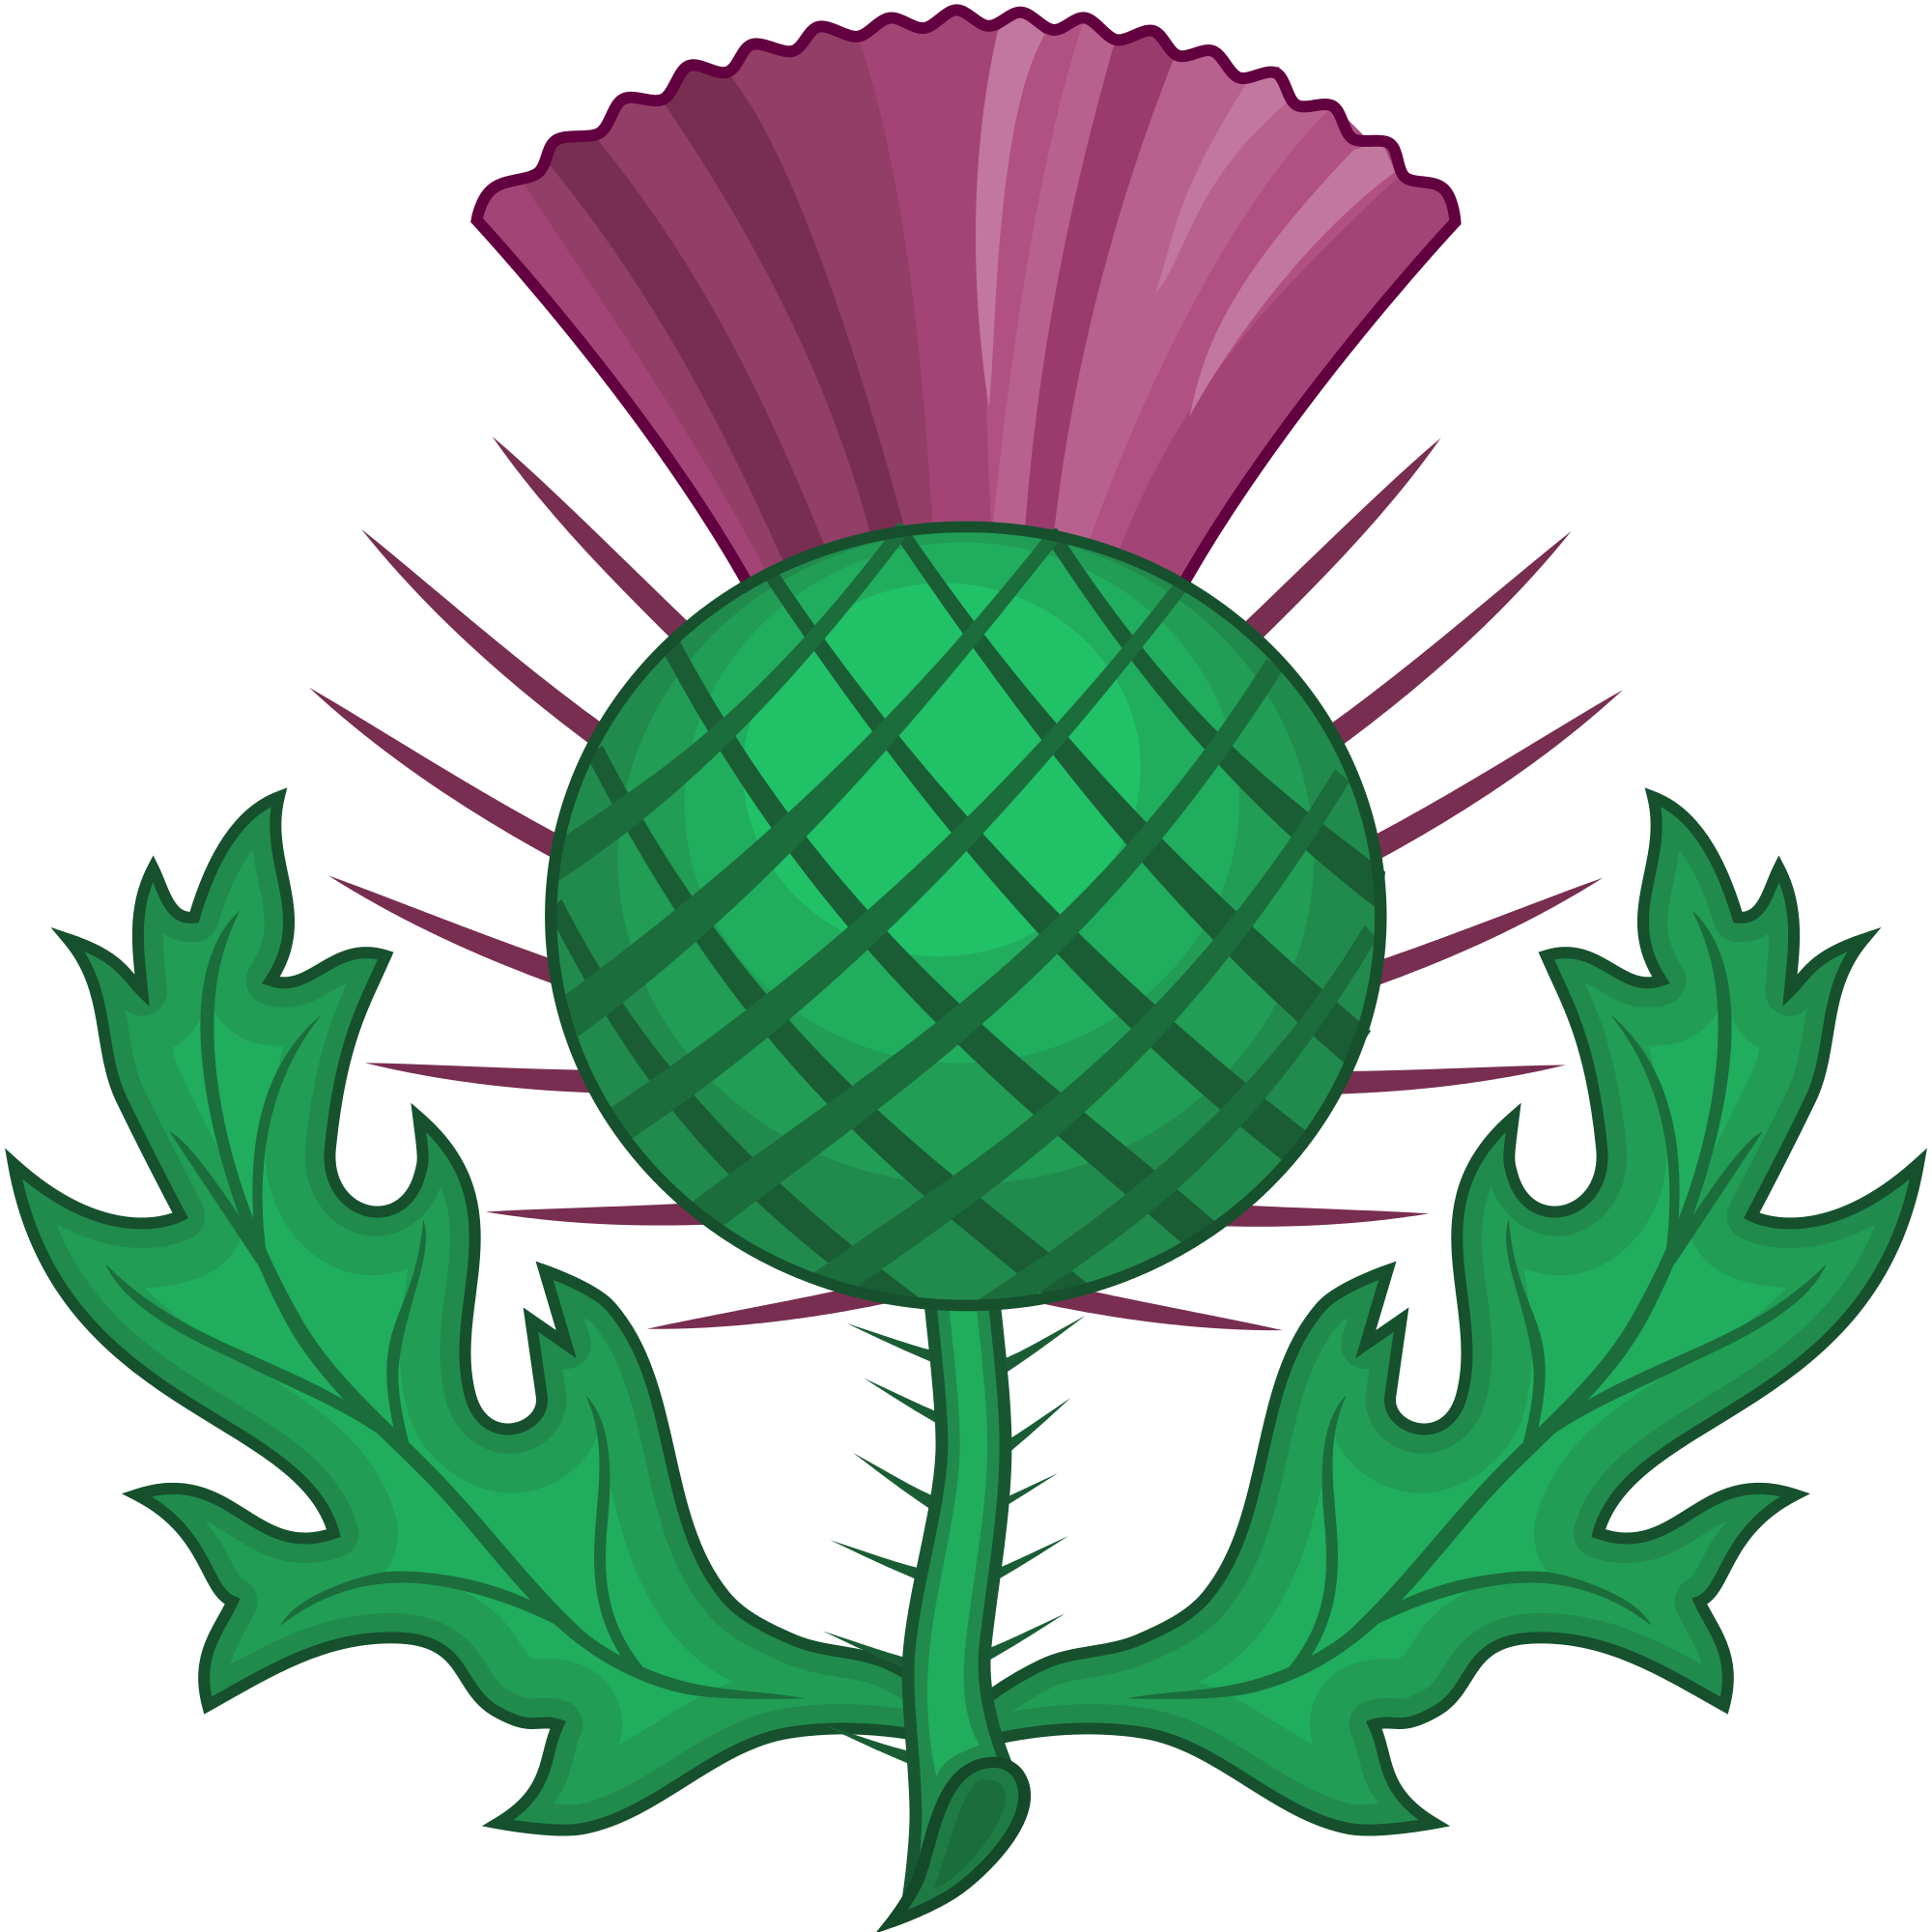 Football clipart thistle girl picture free library https://upload.wikimedia.org/wikipedia/commons/thumb/b/bc ... picture free library